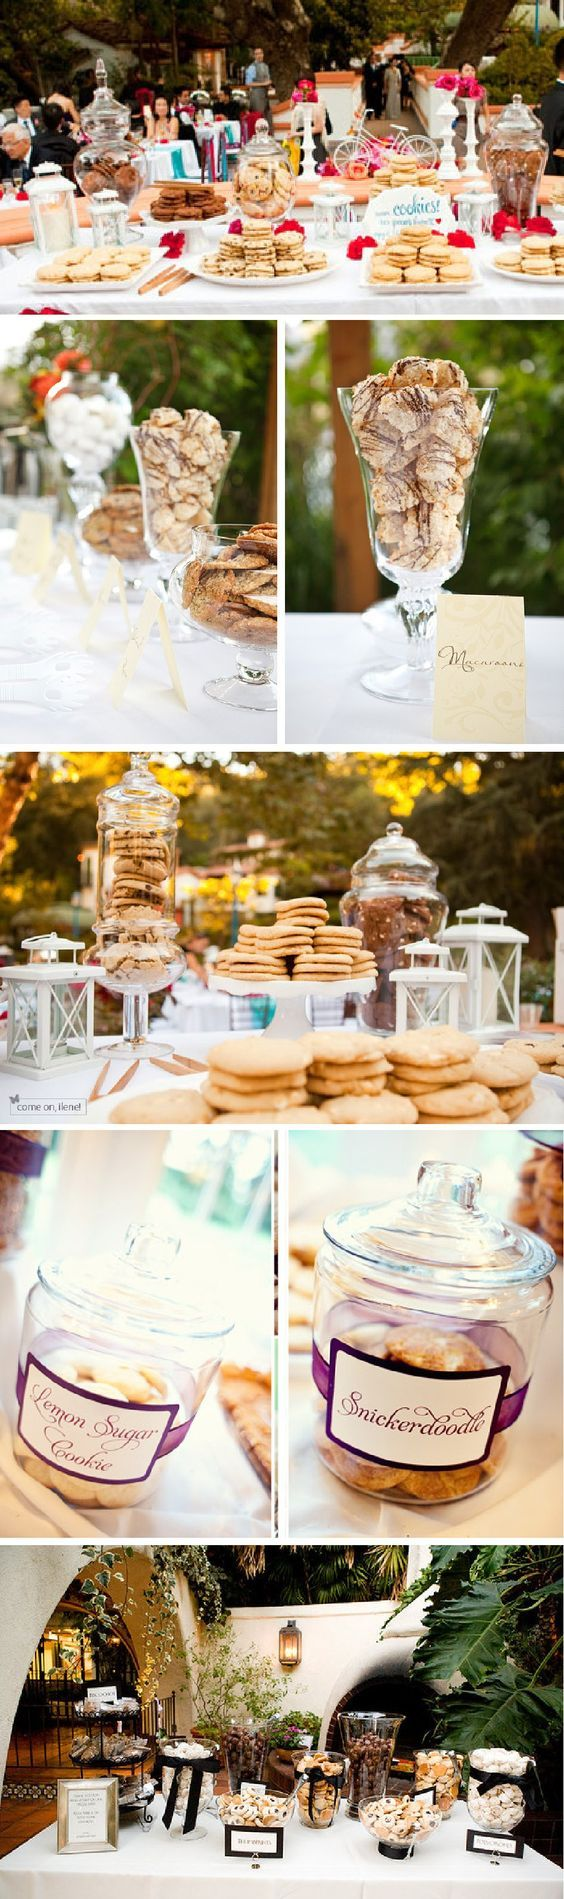 milk and cookies wedding bar / / http://www.deerpearlflowers.com/wedding-smore-cookies-milk-bar-ideas/